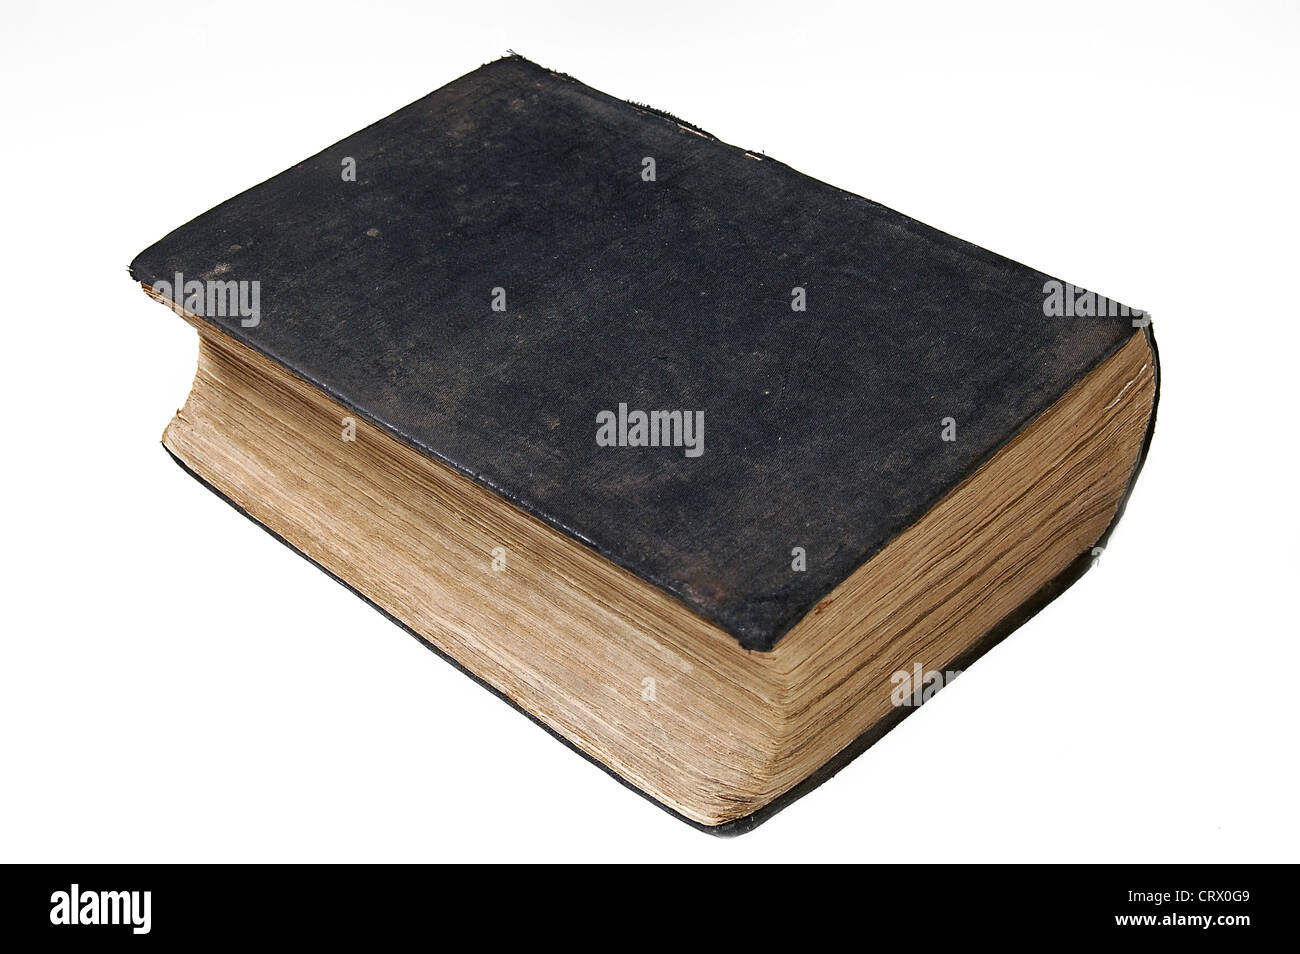 A very old closed book on white background - Stock Image